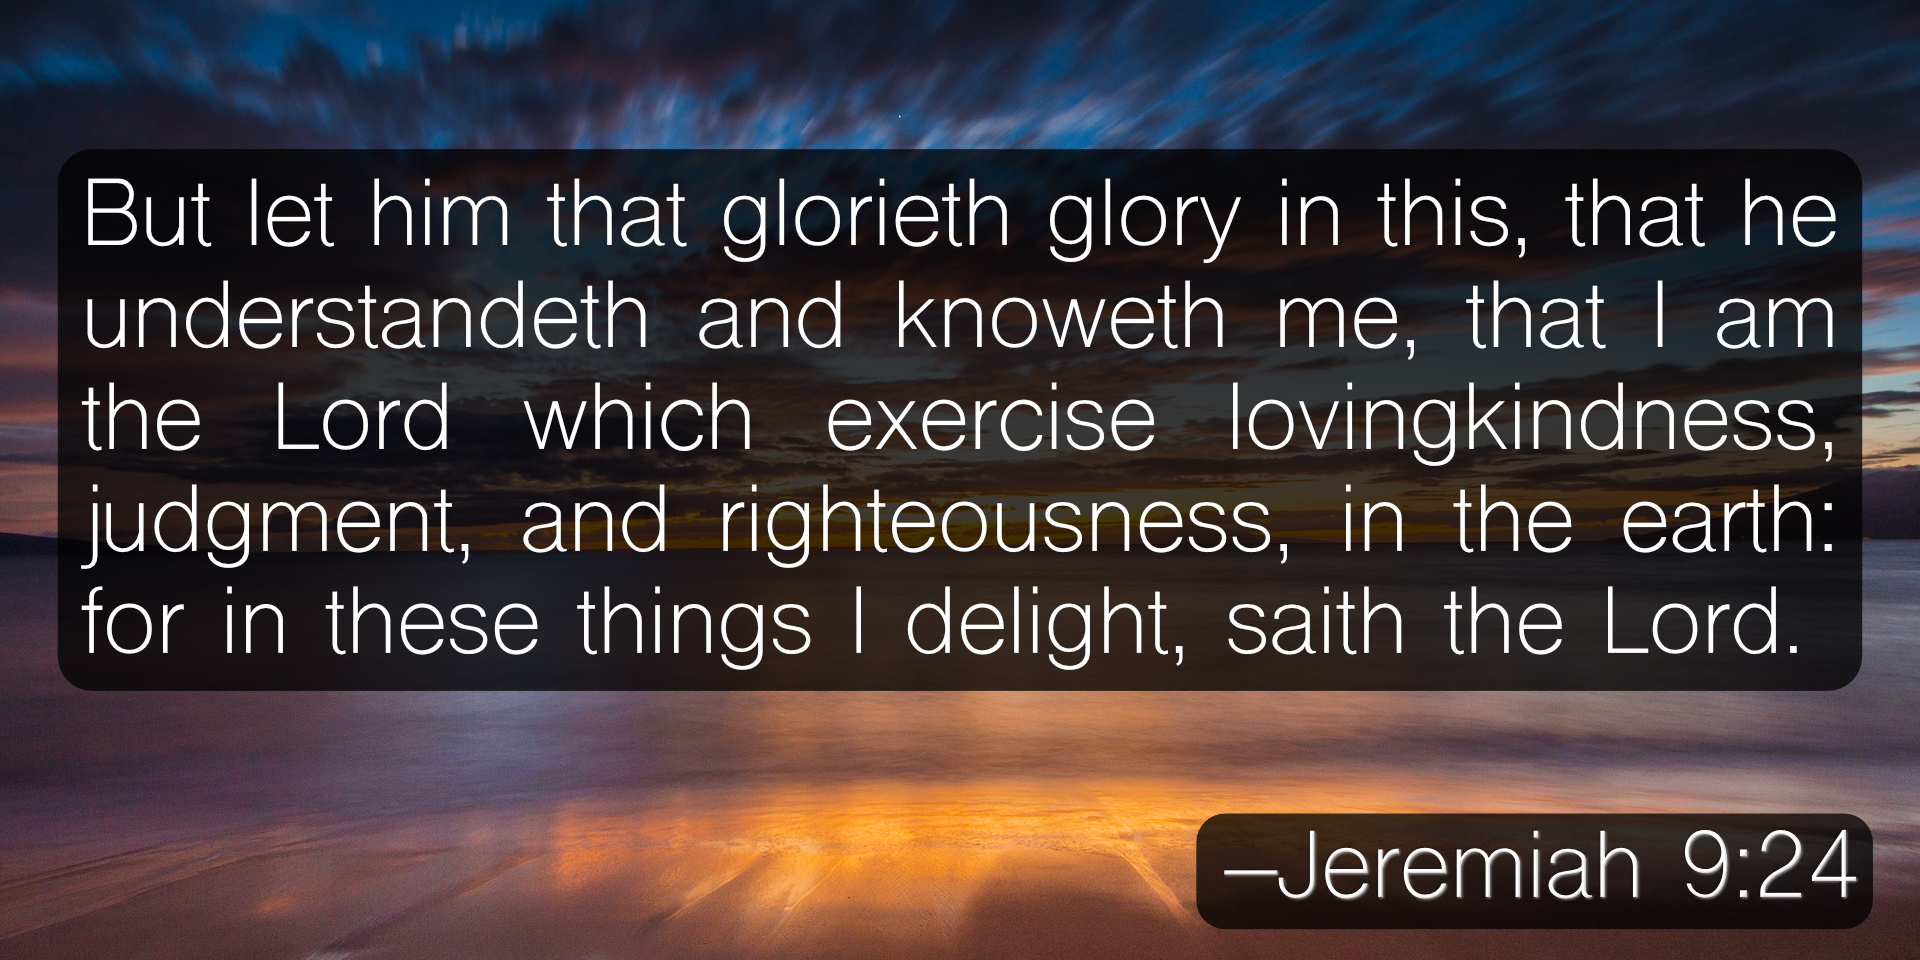 But let him that glorieth glory in this, that he understandeth and knoweth me, that I am the Lord which exercise lovingkindness, judgment, and righteousness, in the earth: for in these things I delight, saith the Lord. –Jeremiah 9:24